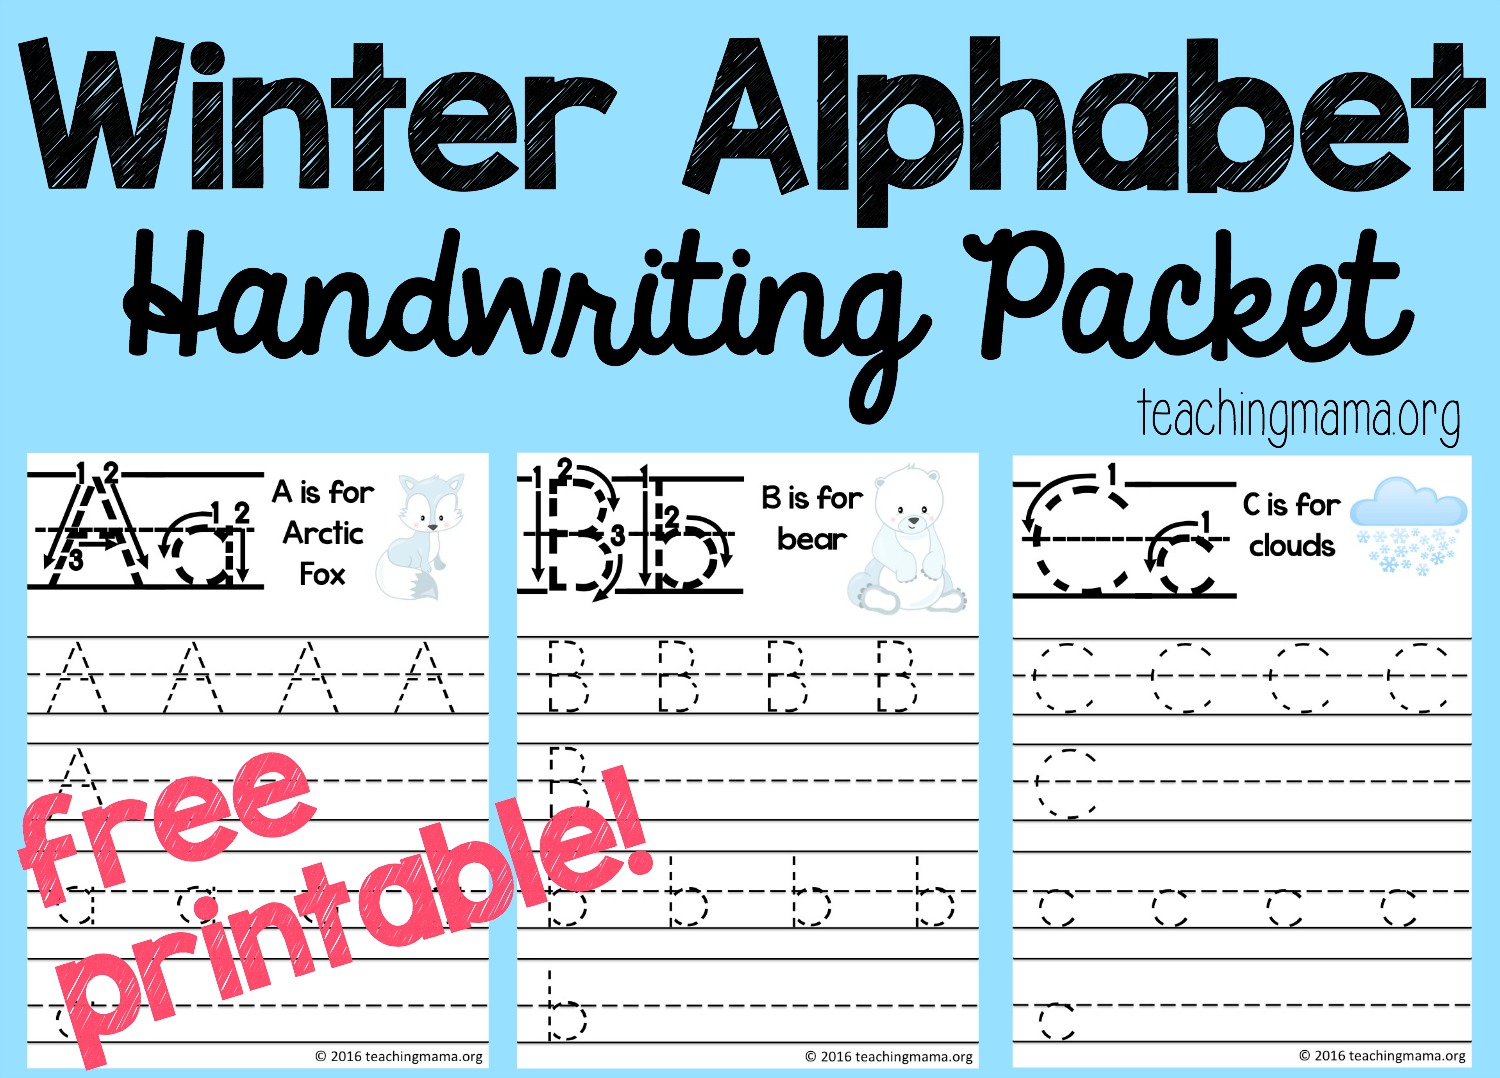 Winter Alphabet Handwriting Packet